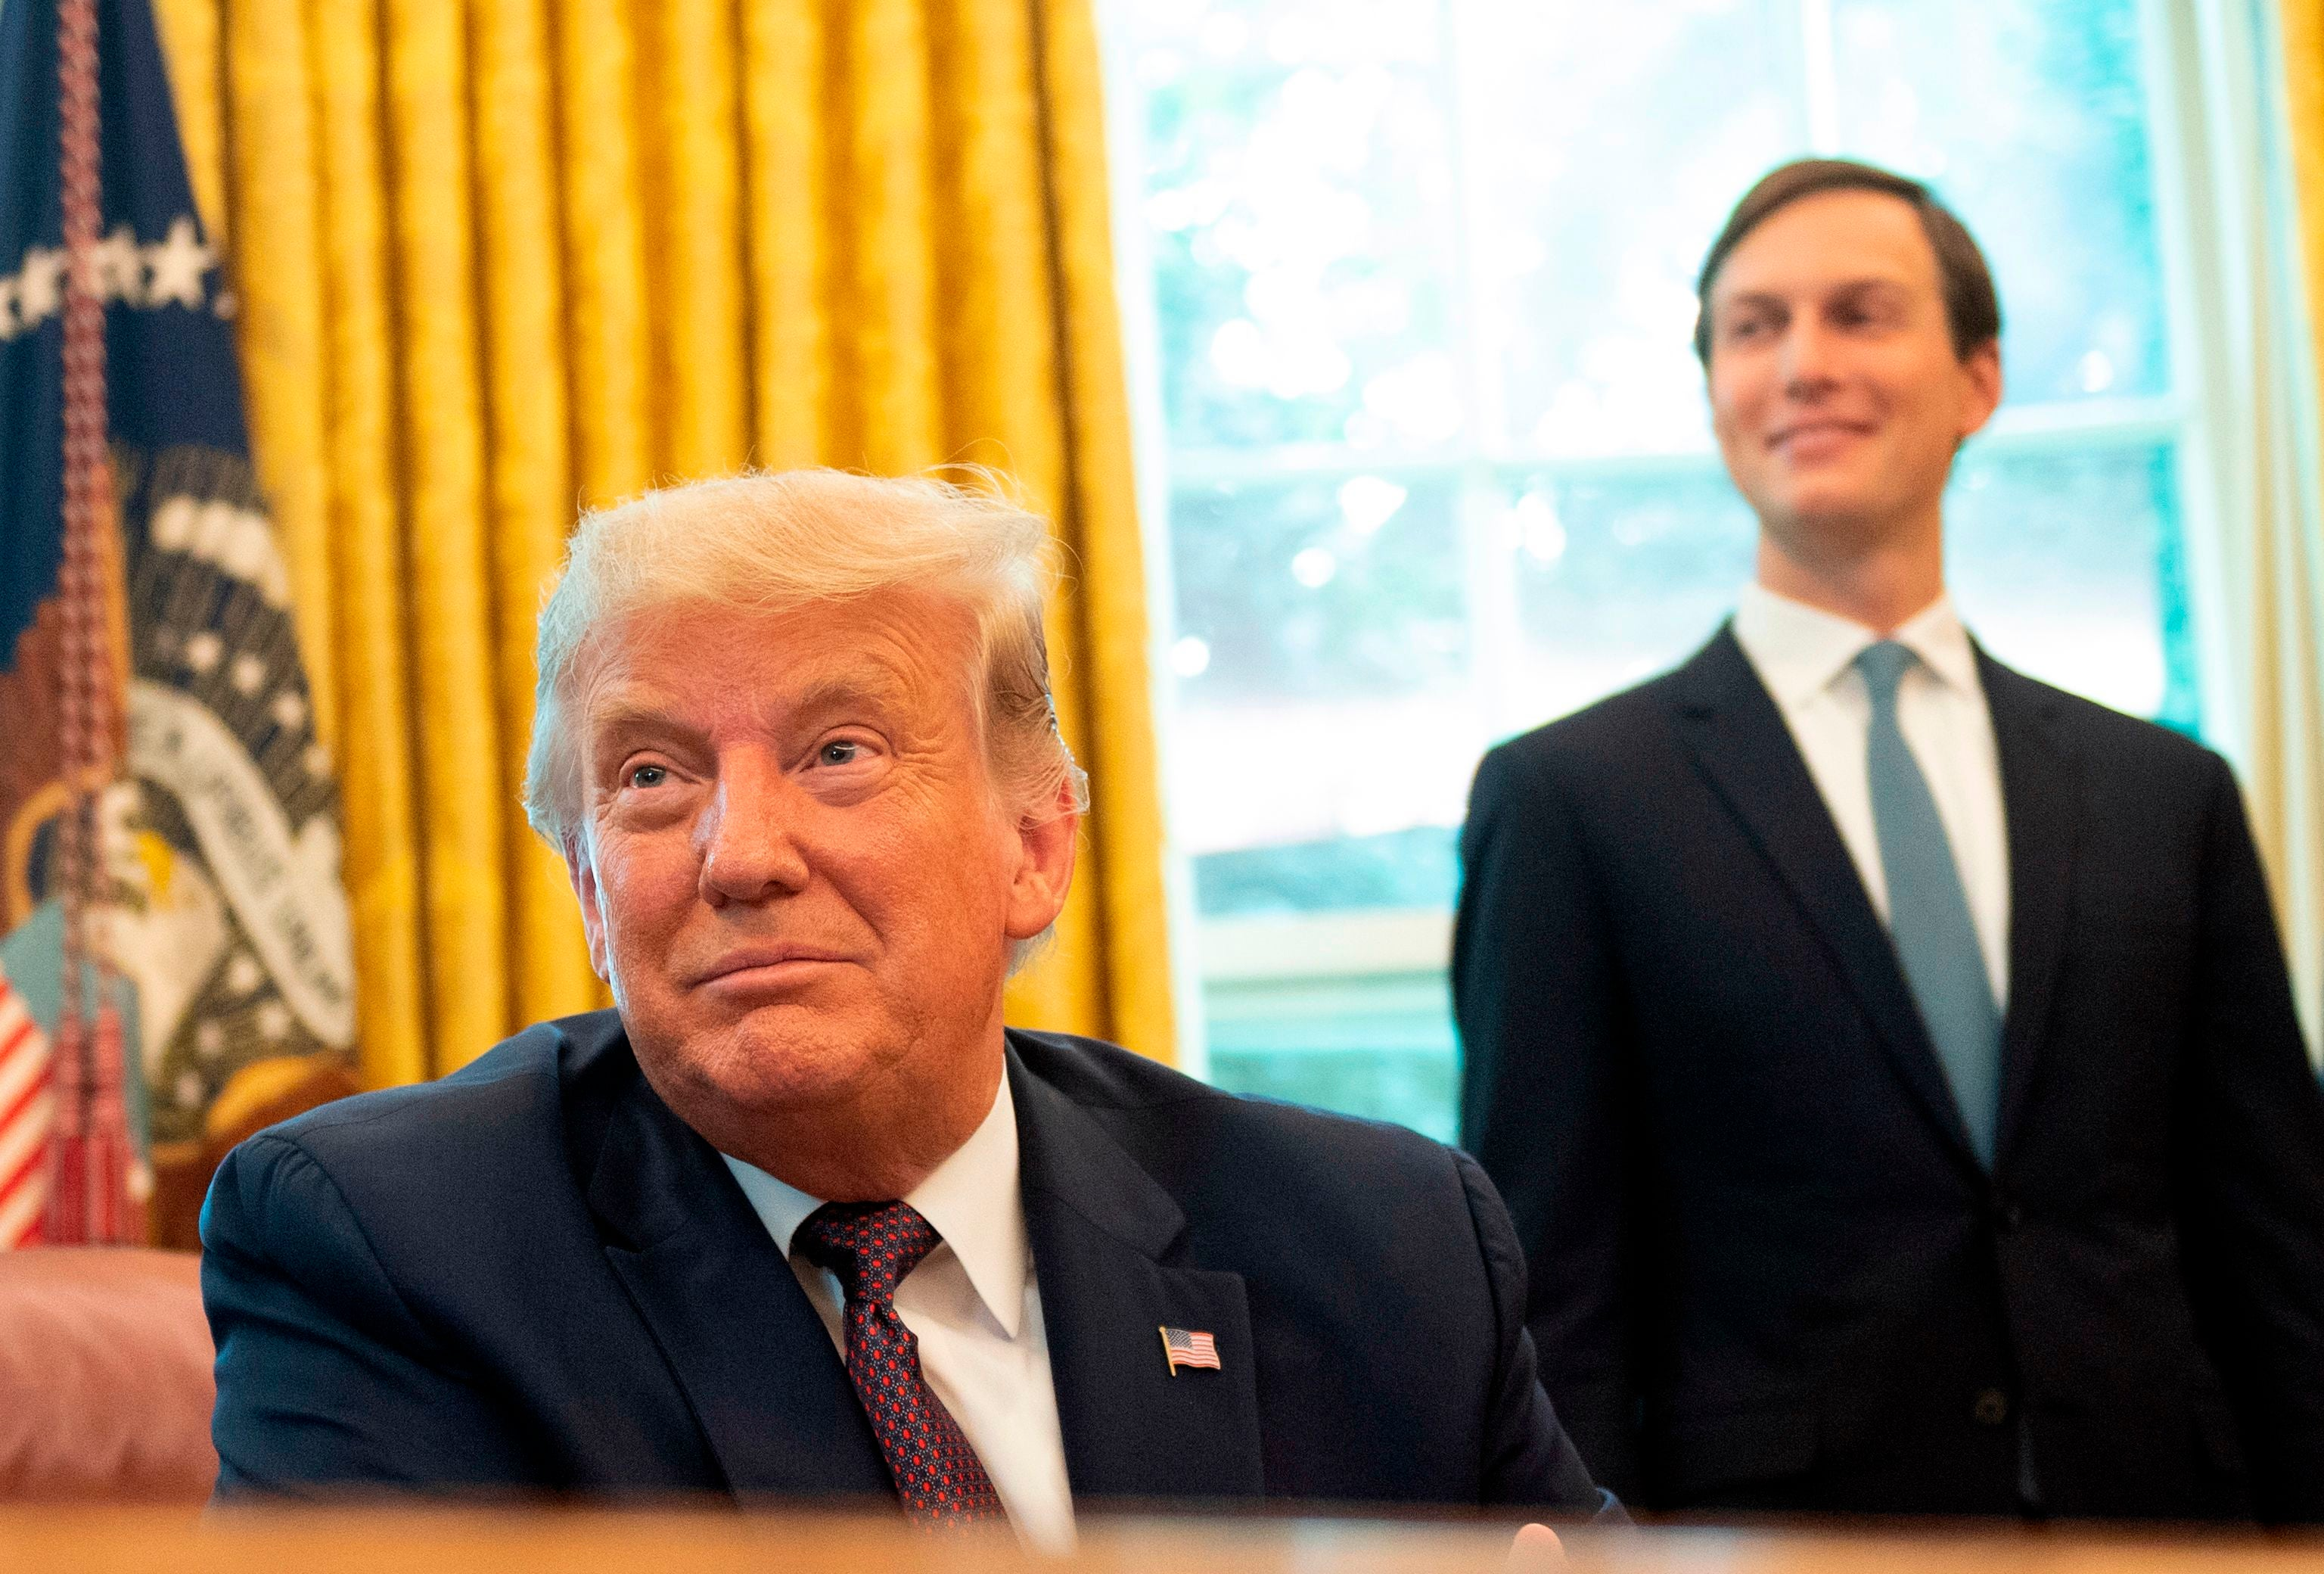 Donald Trump and Jared Kushner receive $3.65m in PPP loan money, report says